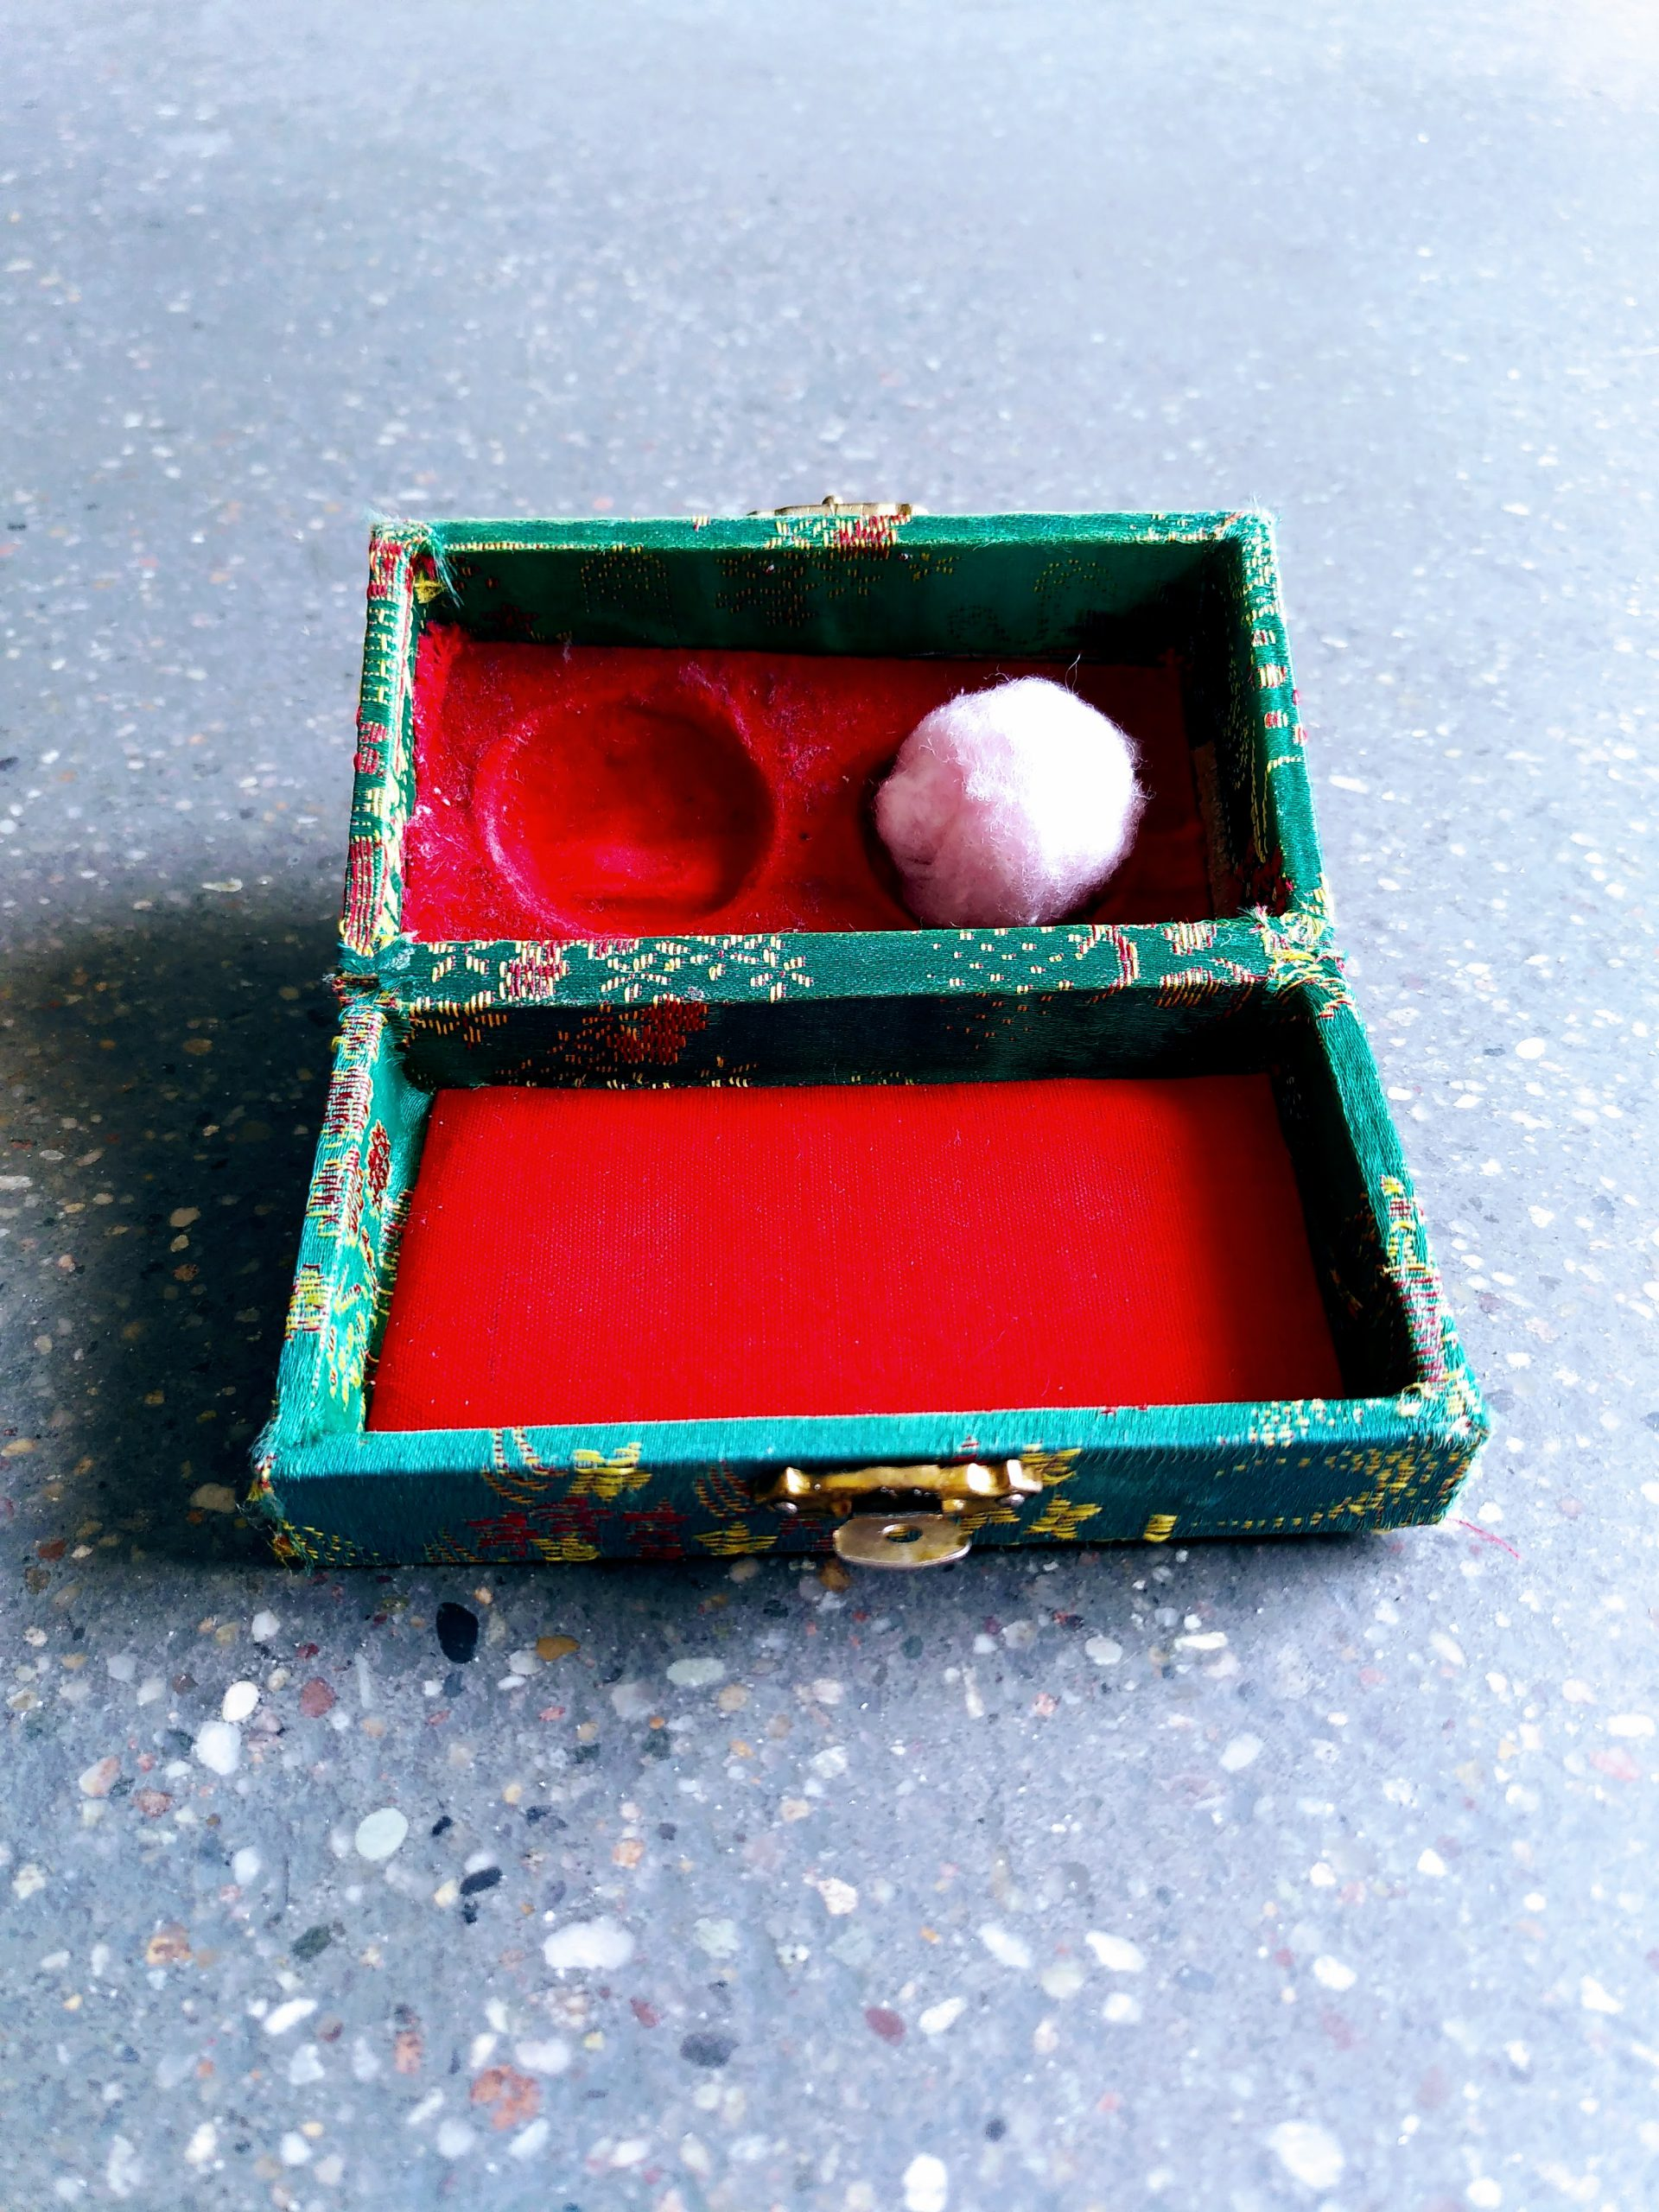 A green box with red lining. In it lies a pink cotton ball.